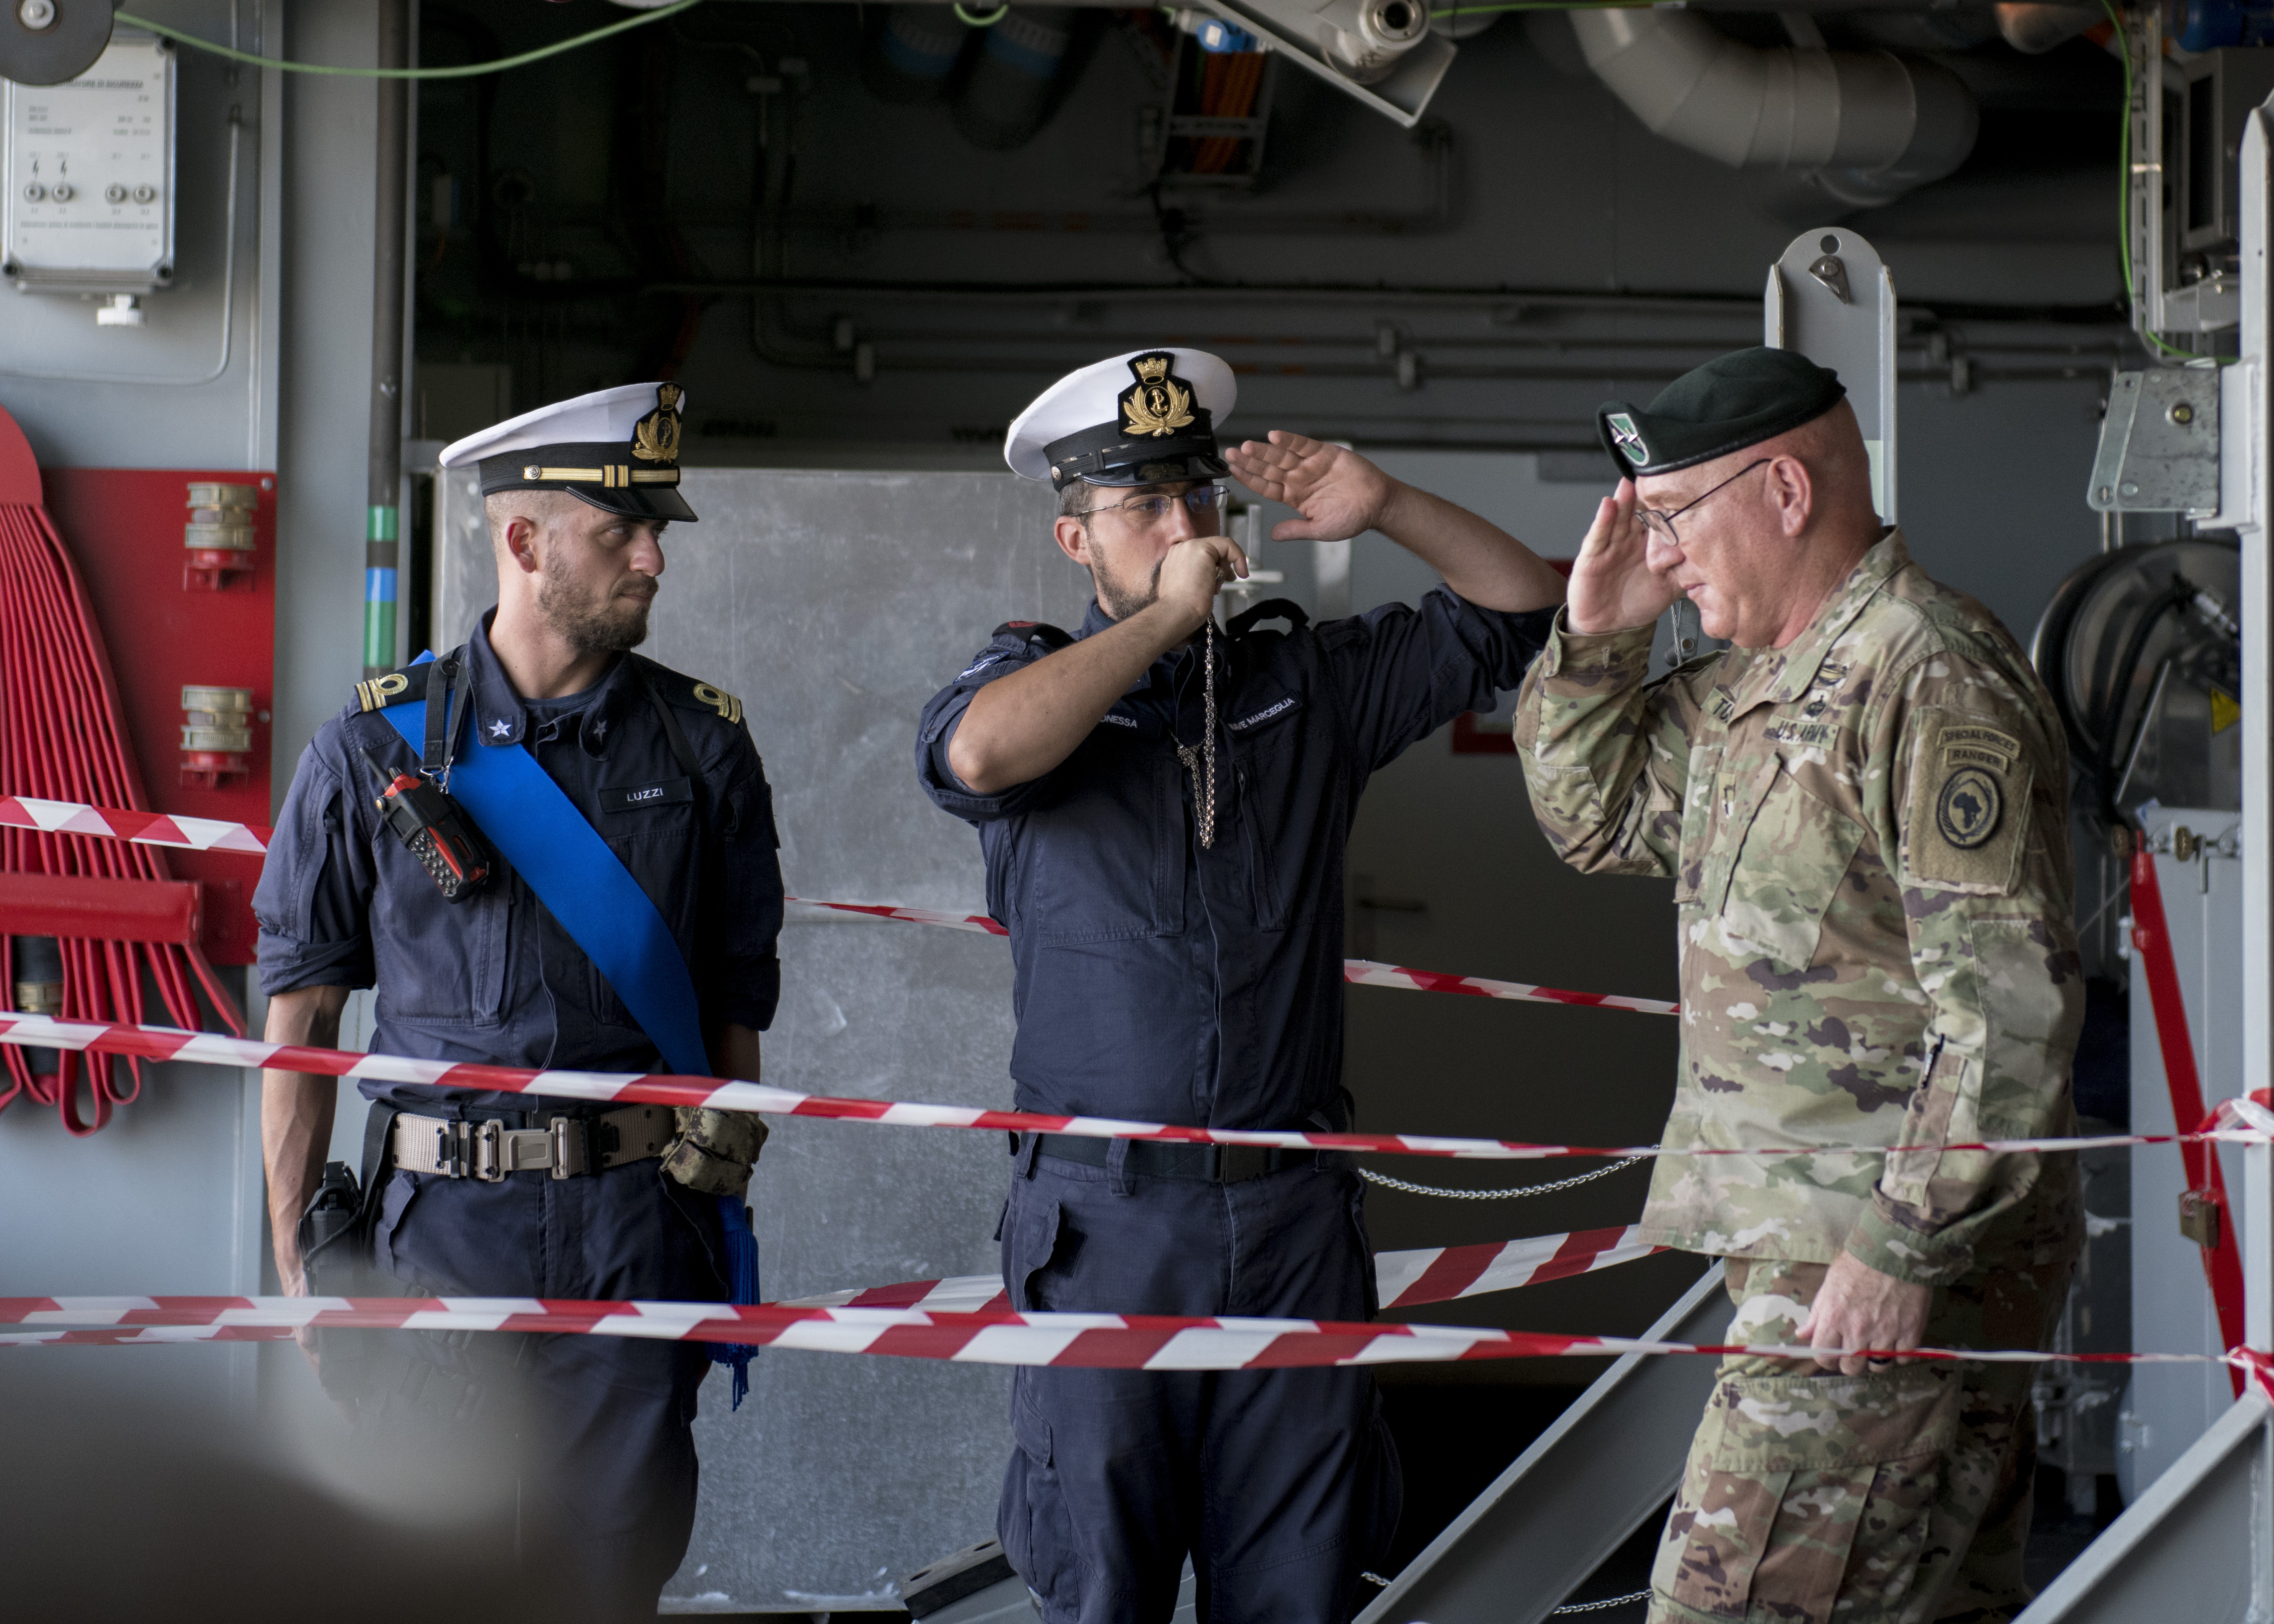 U.S. Army Maj. Gen. Michael D. Turello, commanding general of Combined Joint Task Force-Horn of Africa, renders a salute upon disembarking ITS Antonio Marceglia outside Djibouti City, Djibouti, Oct. 21, 2019. ITS Antonio Marceglia is the flagship of Operation Atalanta, a counter-piracy naval military operation off the Horn of Africa. (U.S. Air Force Photo by Senior Airman Codie Trimble)